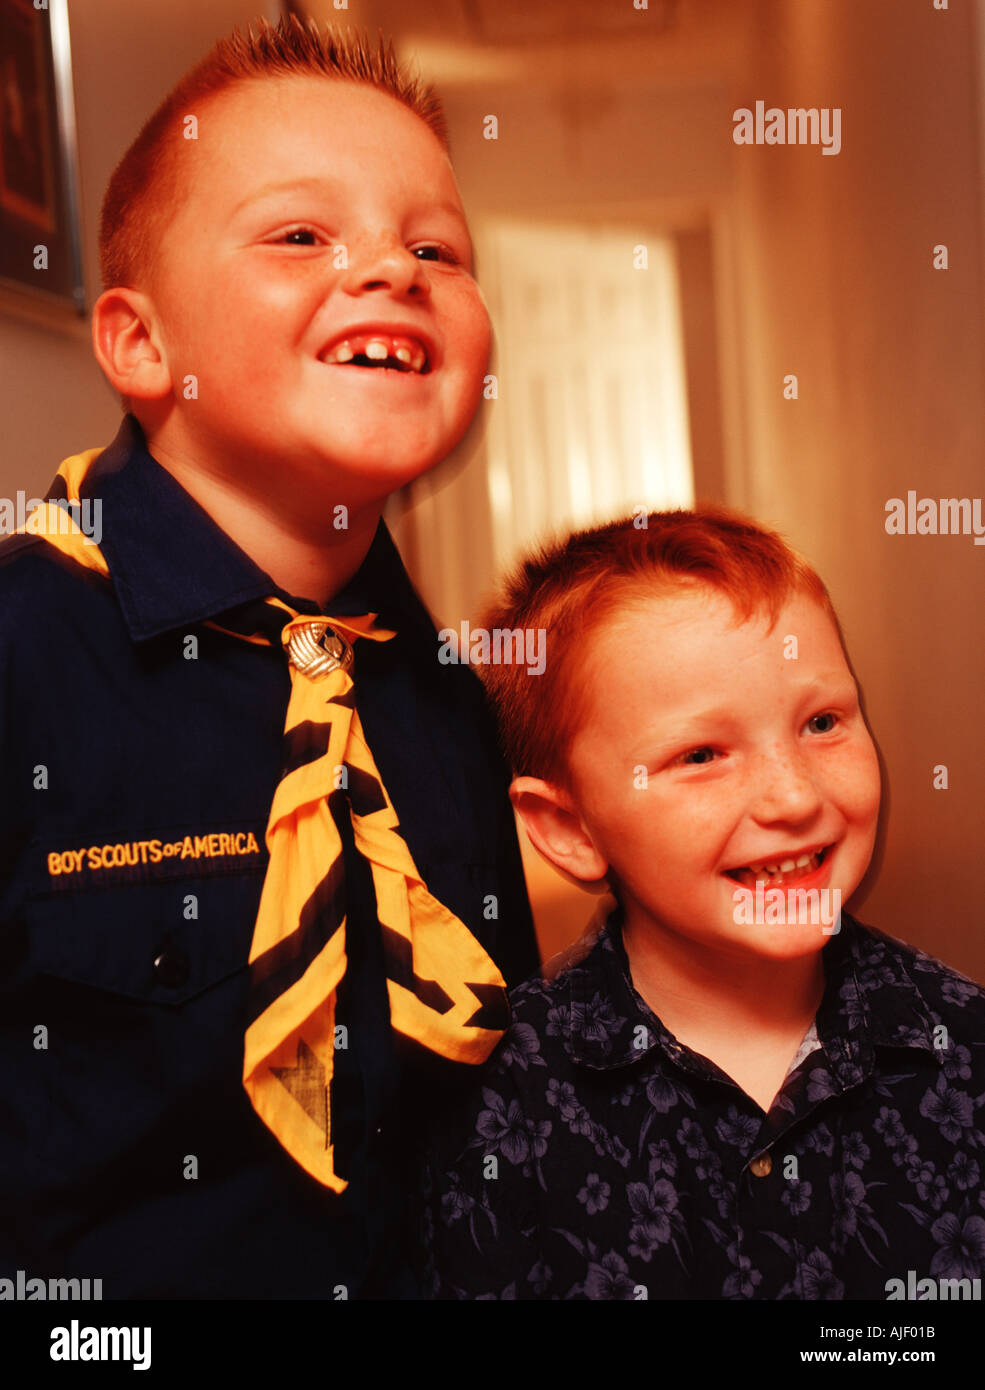 Cub scout - Stock Image